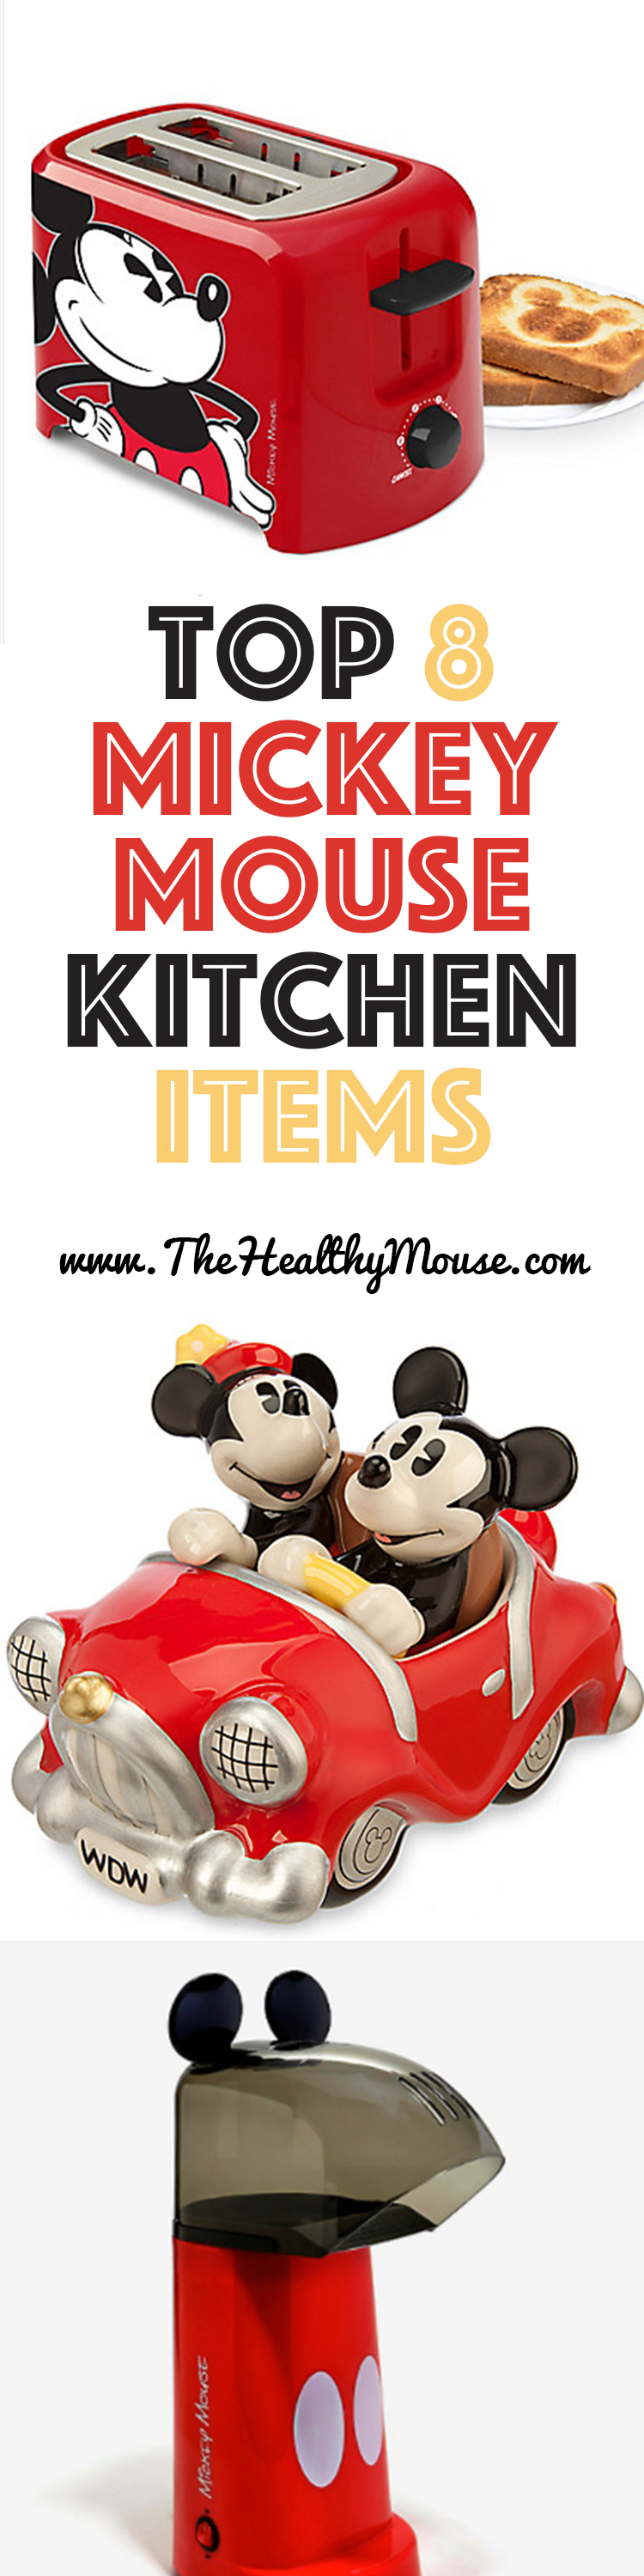 Top 8 Mickey Mouse Kitchen Items   Disney Kitchen Decor   Mickey Mouse Decor